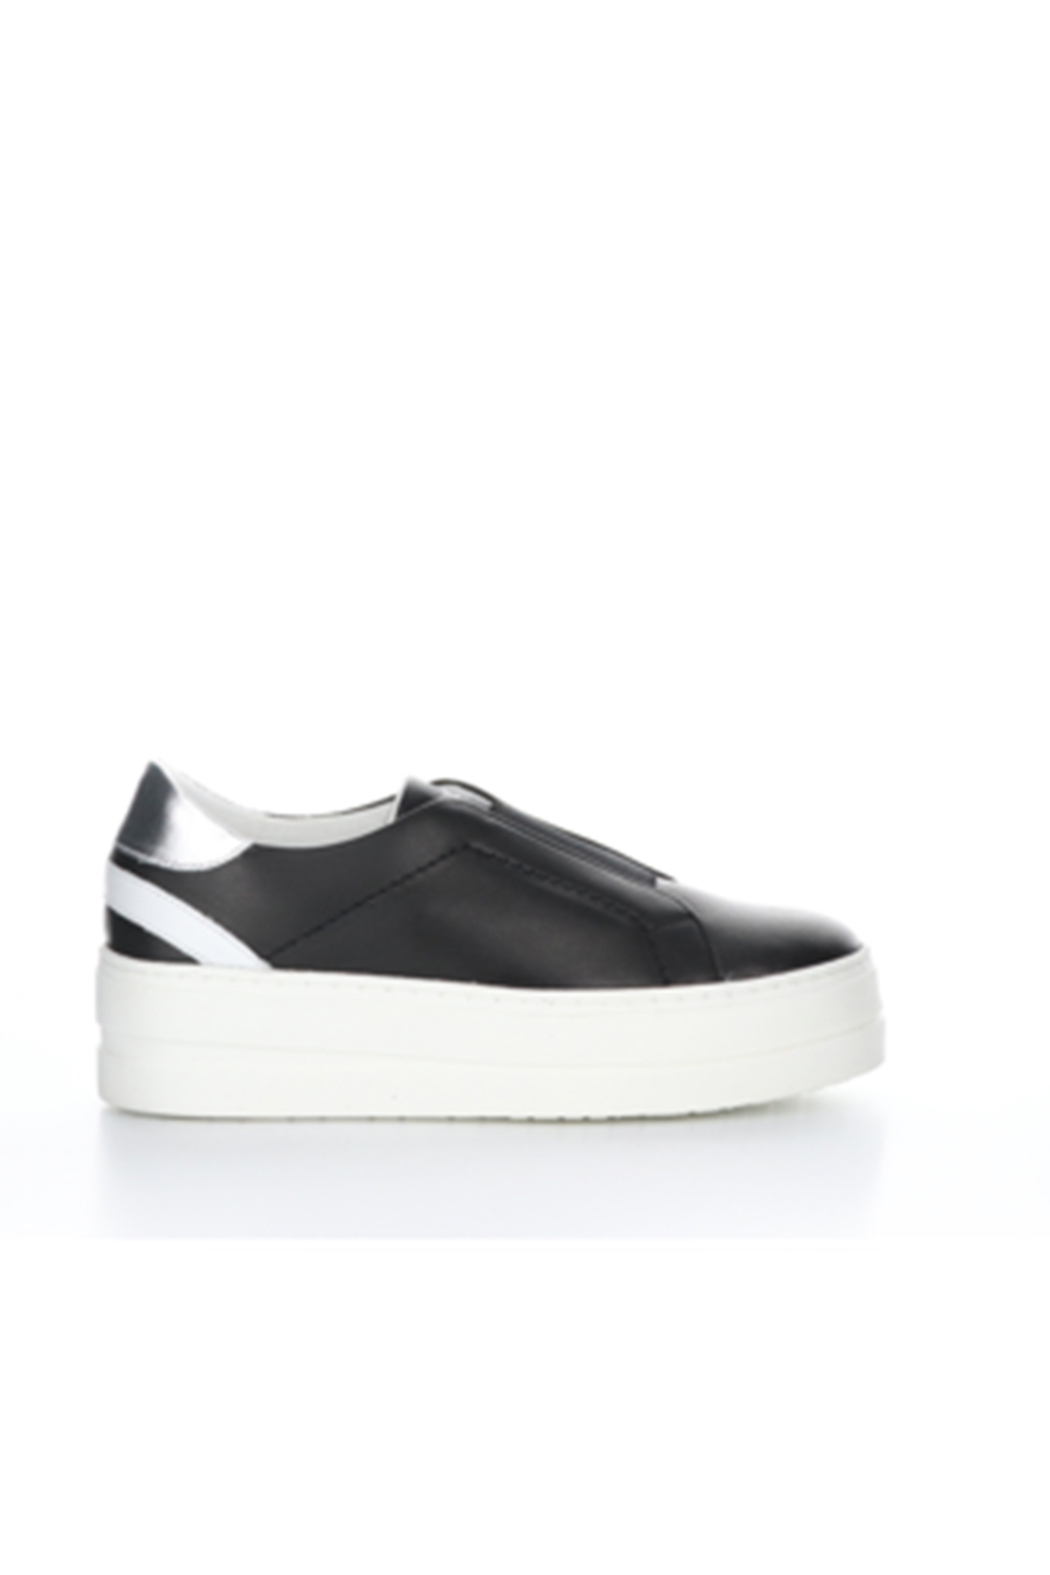 Bos & Co. Mona Black Leather Slip On - Side Cropped Image